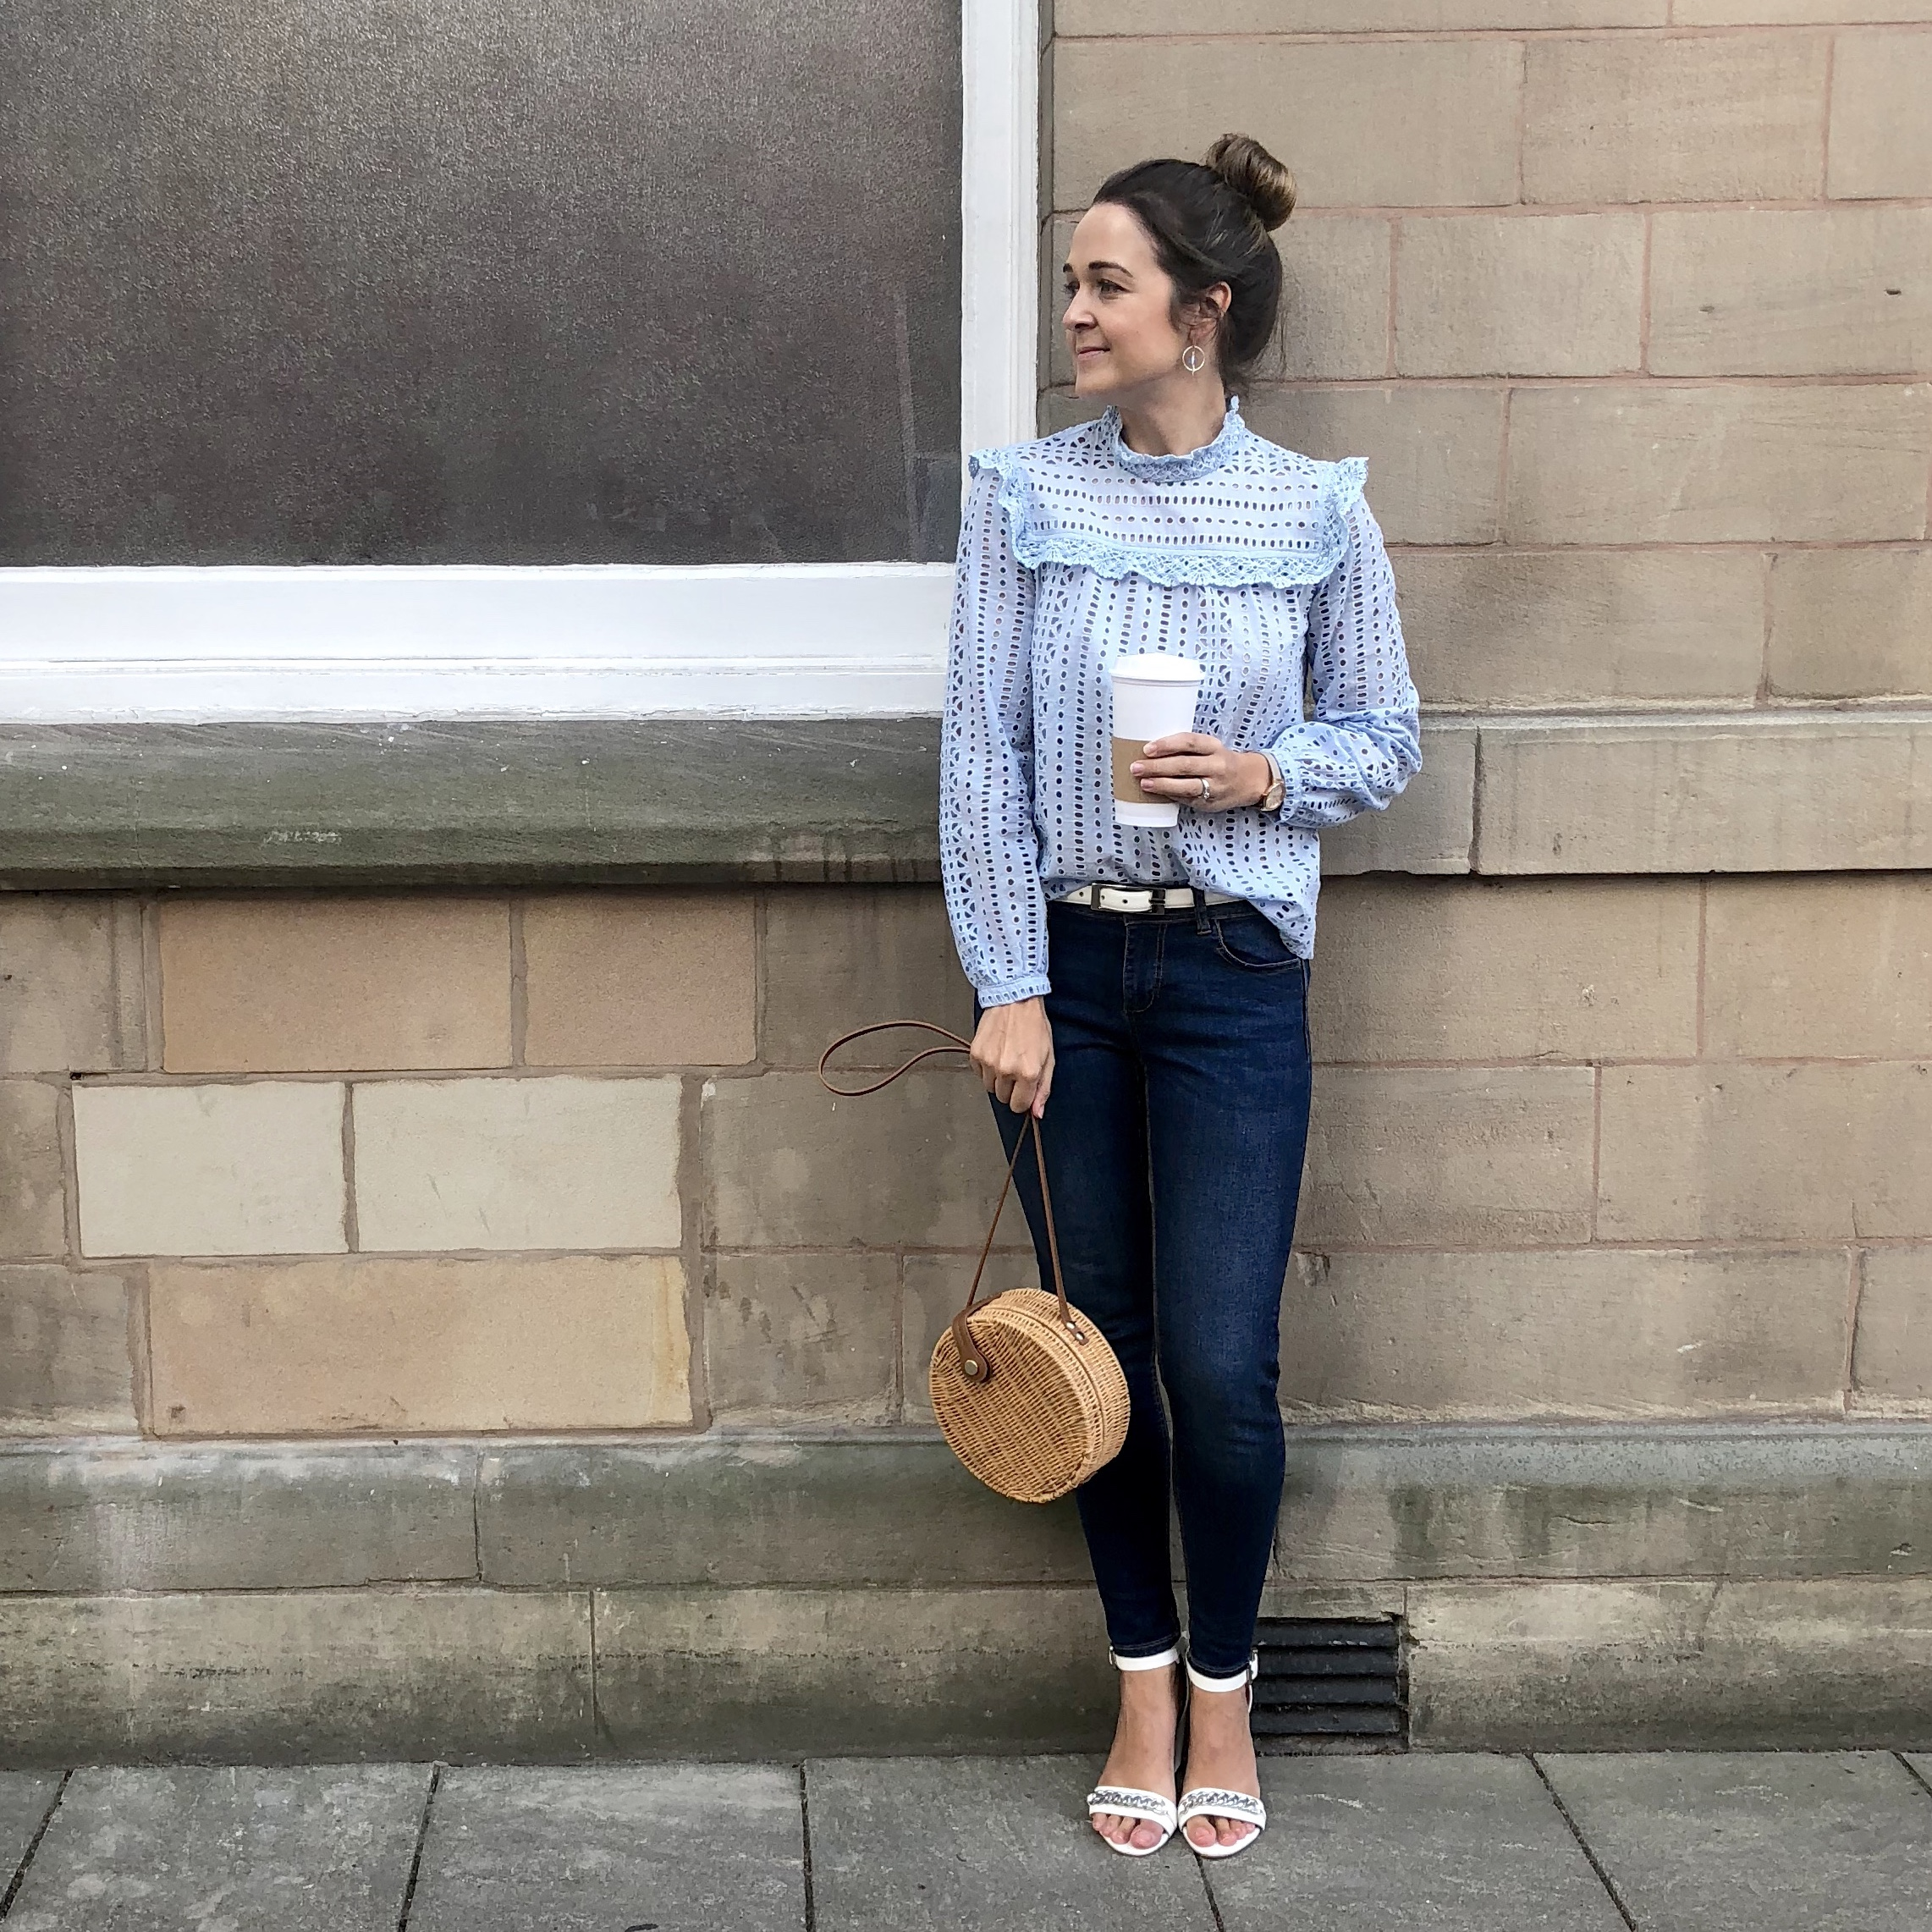 River Island Blue Broderie Top worn by Rebecca Denise English Blogger 2